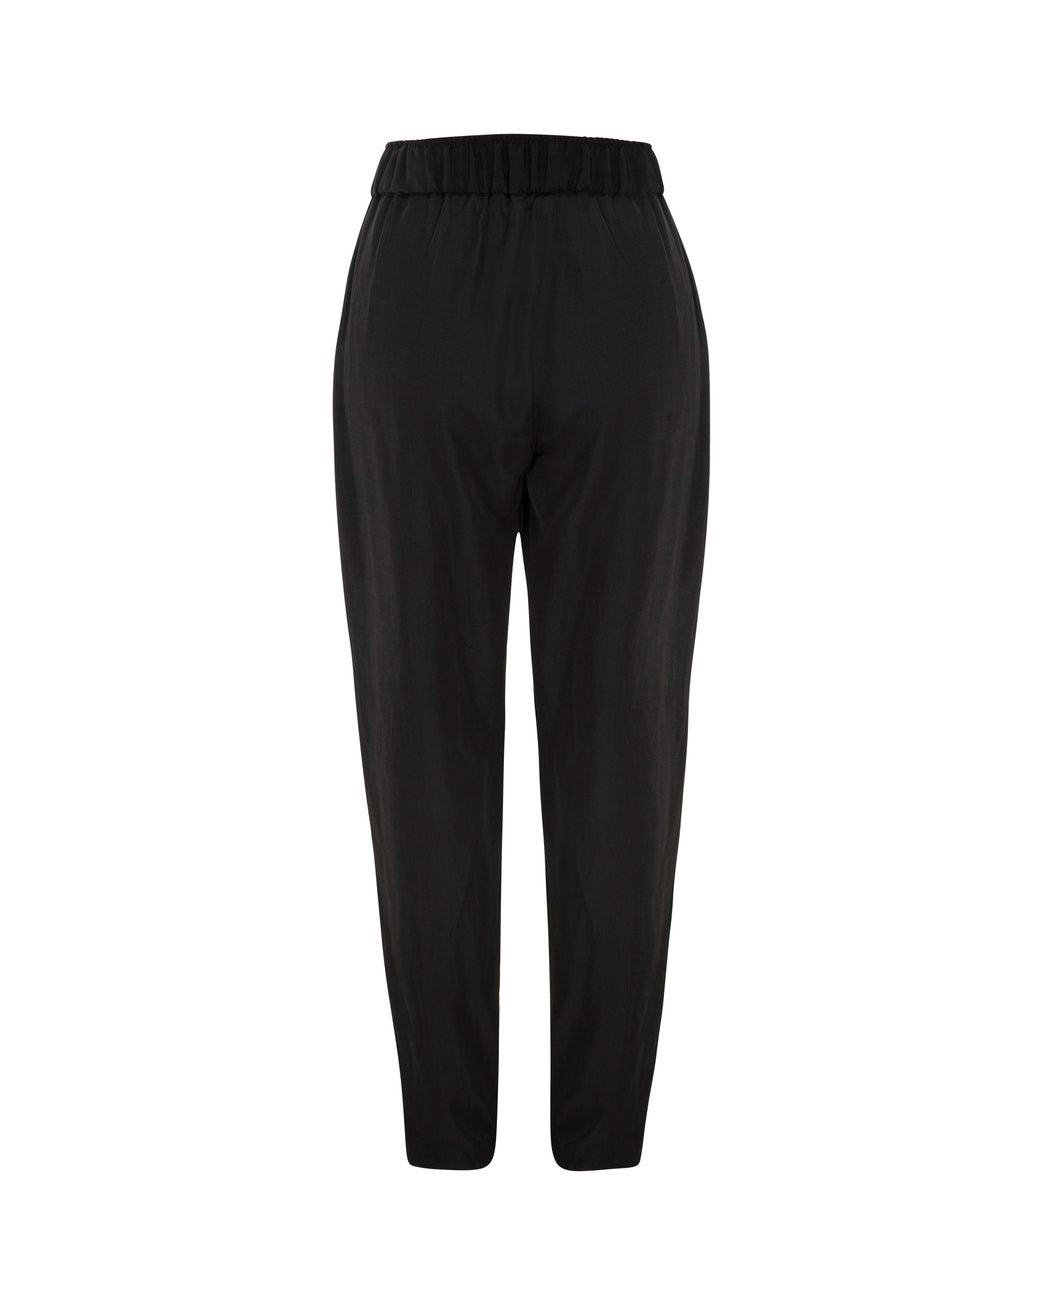 SOFT NOMAD PANT | BLACK